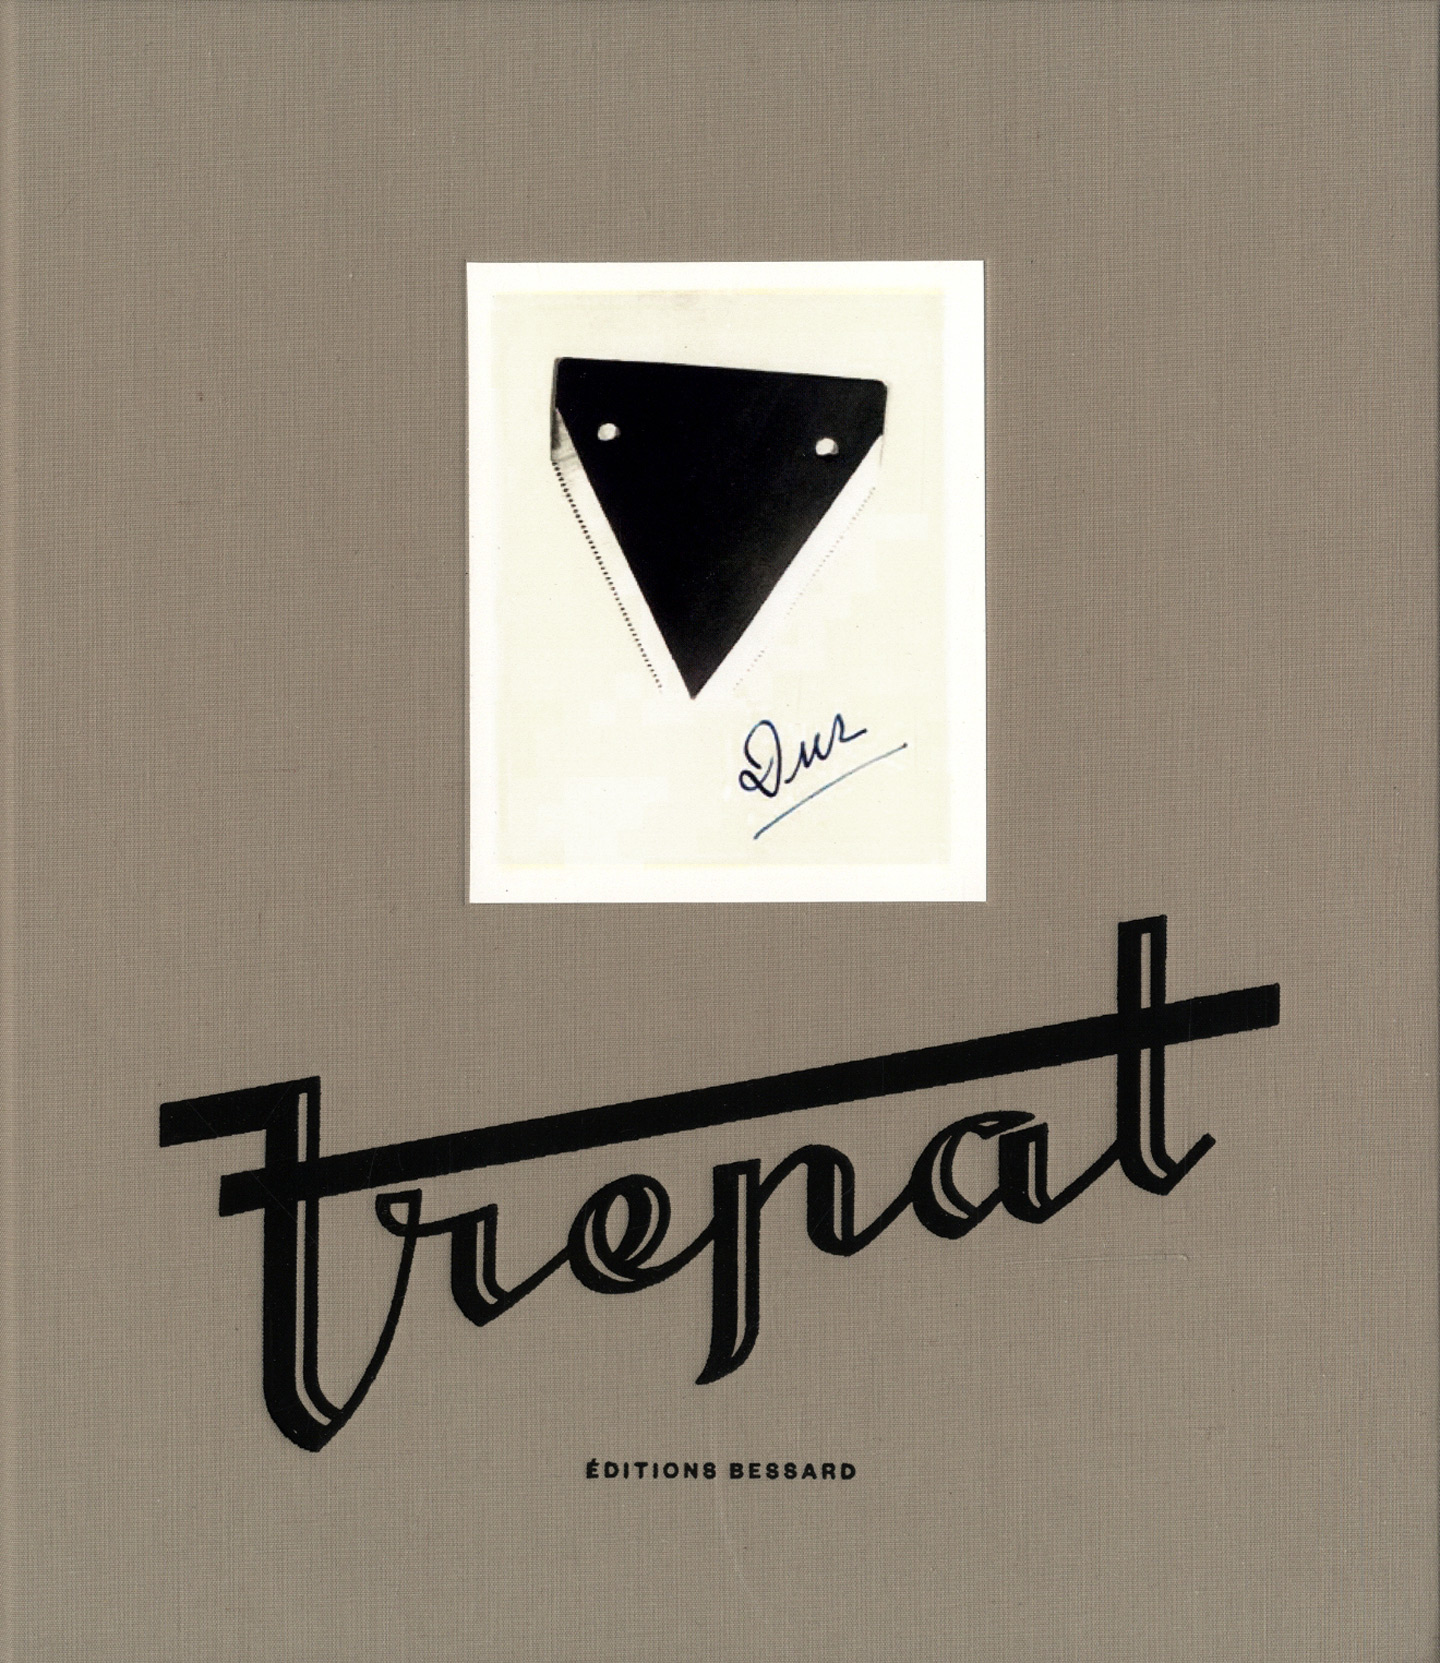 Joan Fontcuberta: Trepat: A Case Study in Avant-Garde Photography, Artist's Limited Edition [SIGNED]